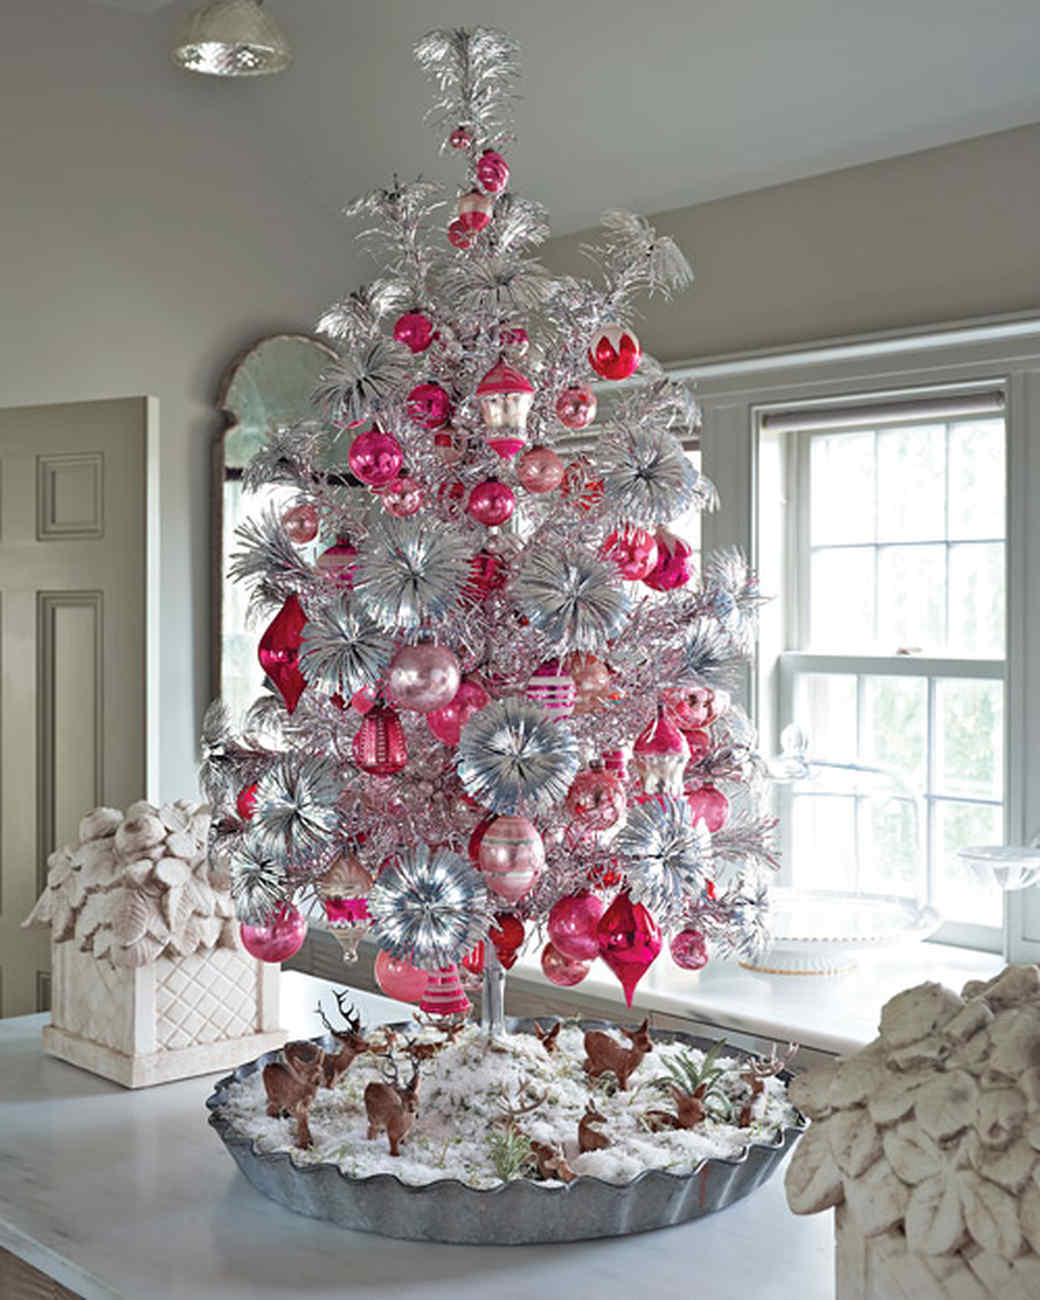 27 creative christmas tree decorating ideas martha stewart - Snow Christmas Tree